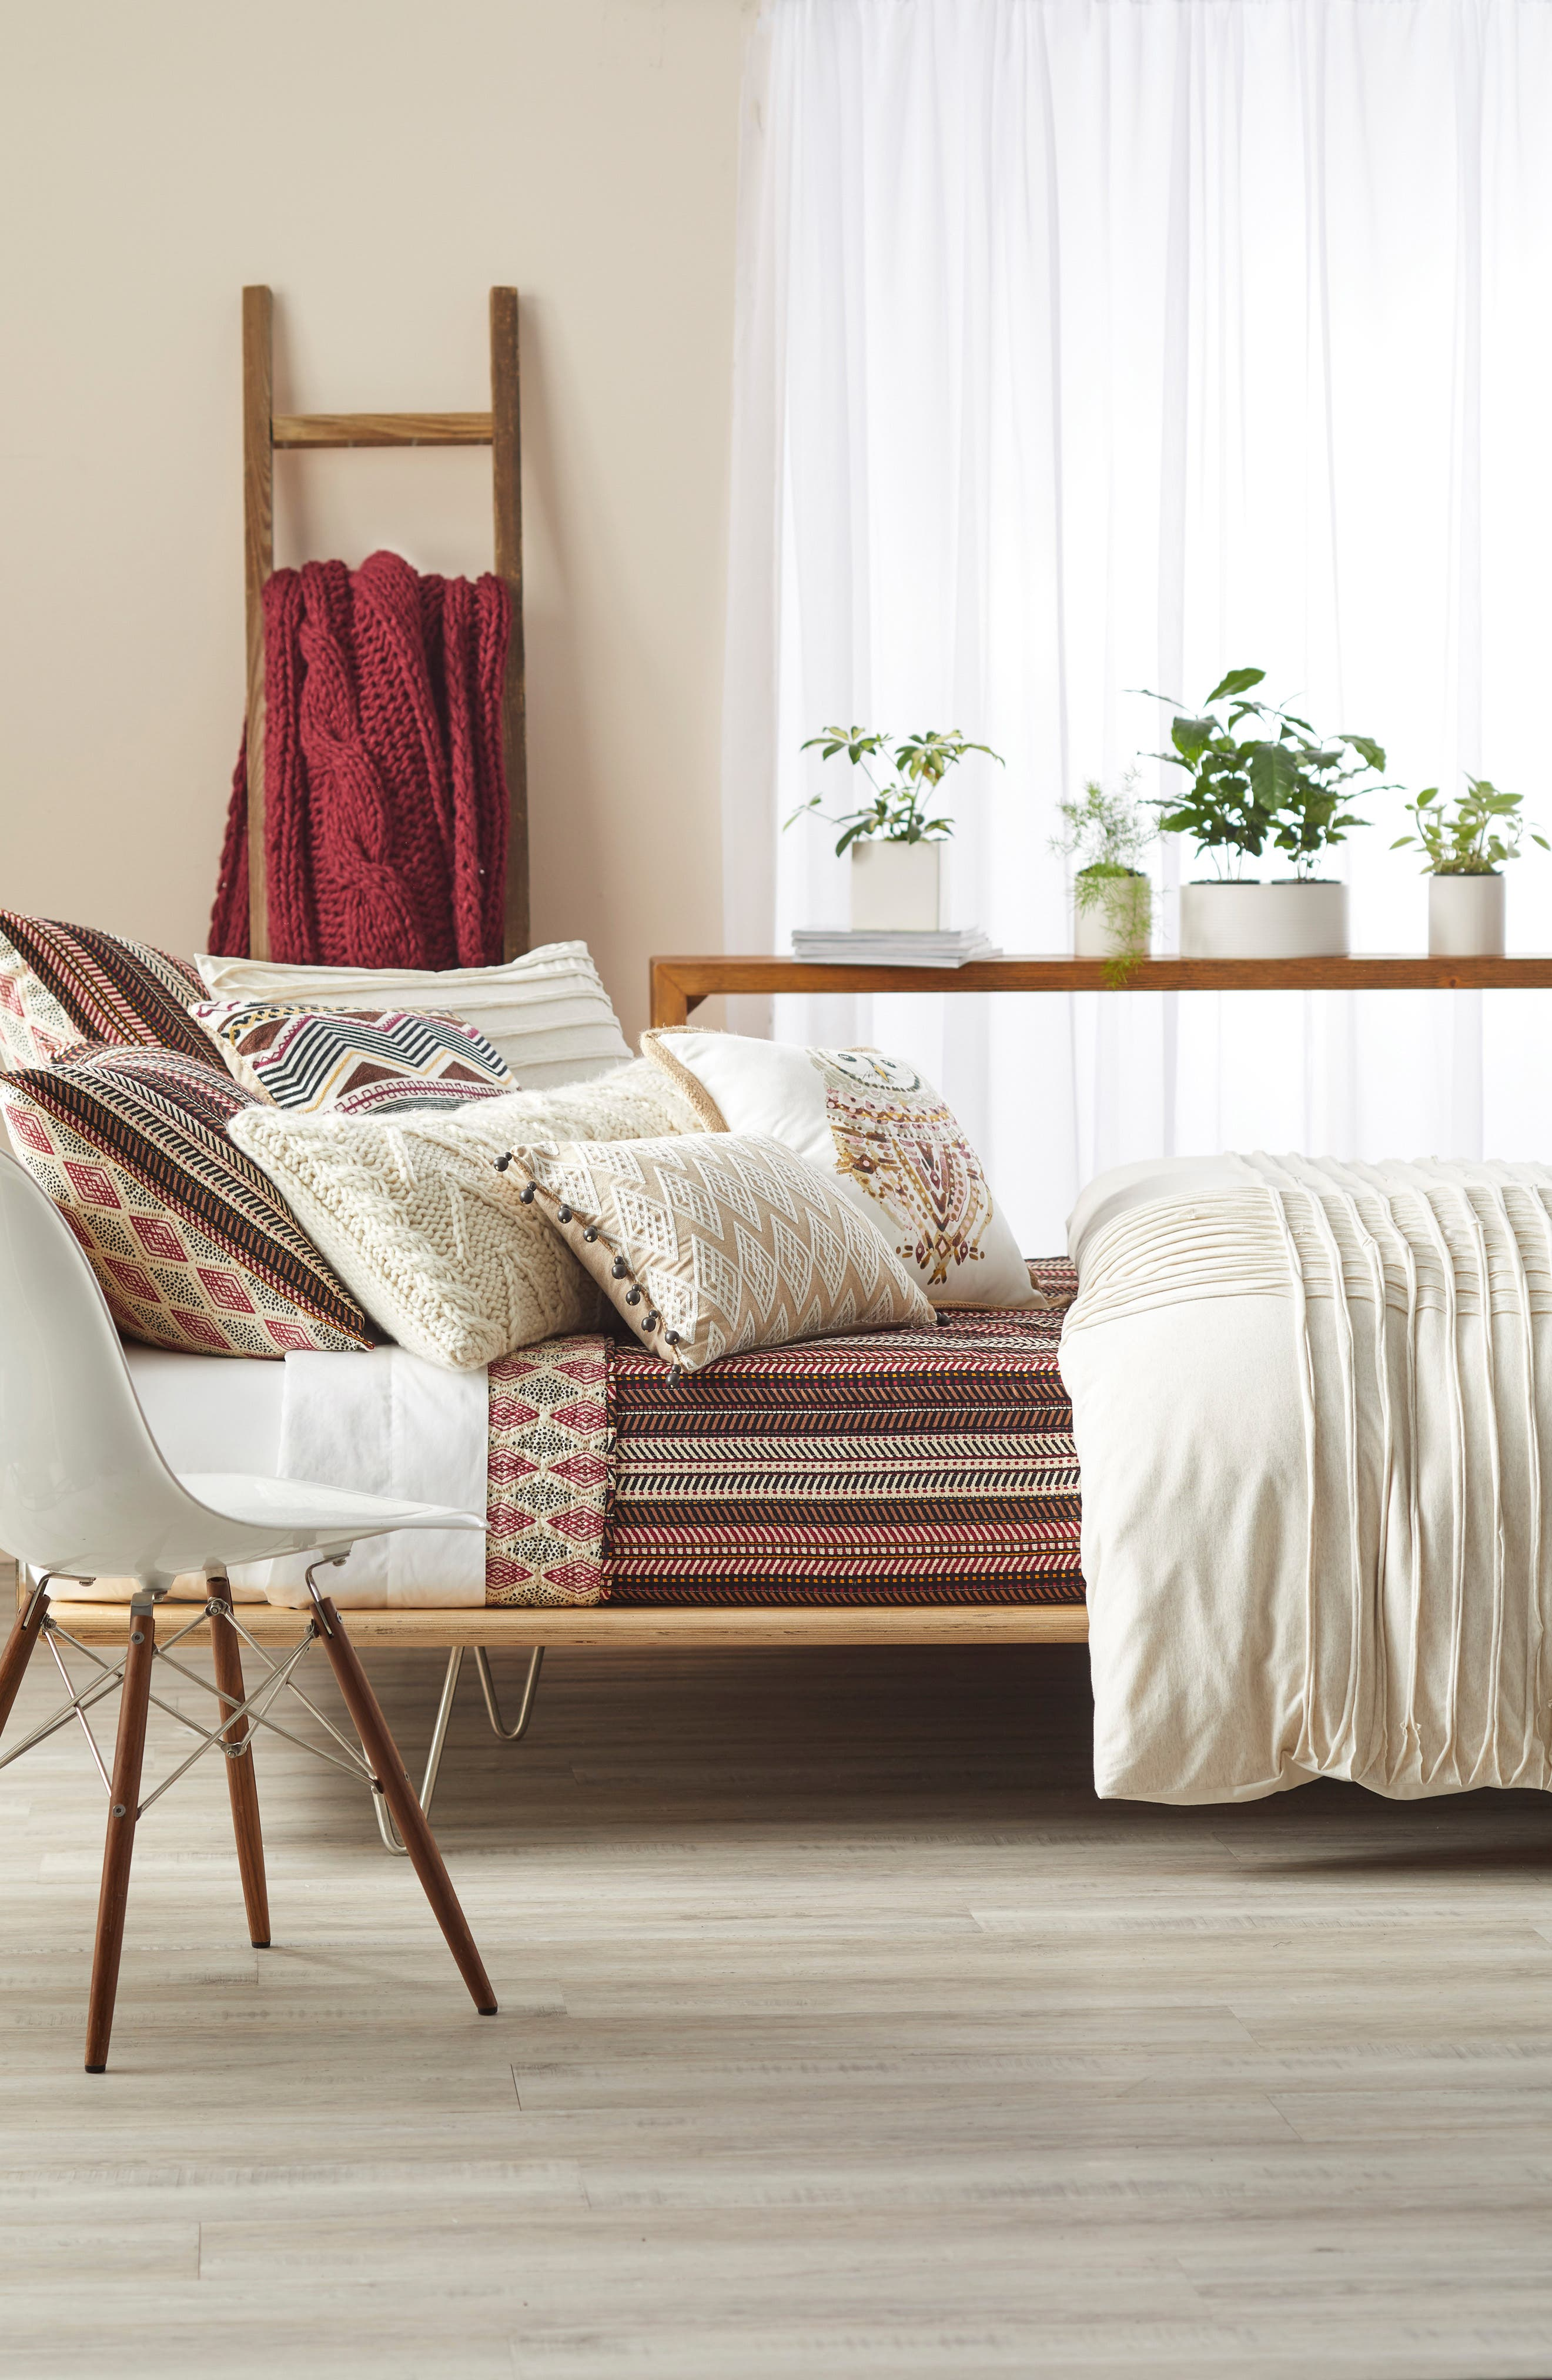 Levtex Zander Quilt & Nordstrom at Home Jersey Grid Bedding Collection